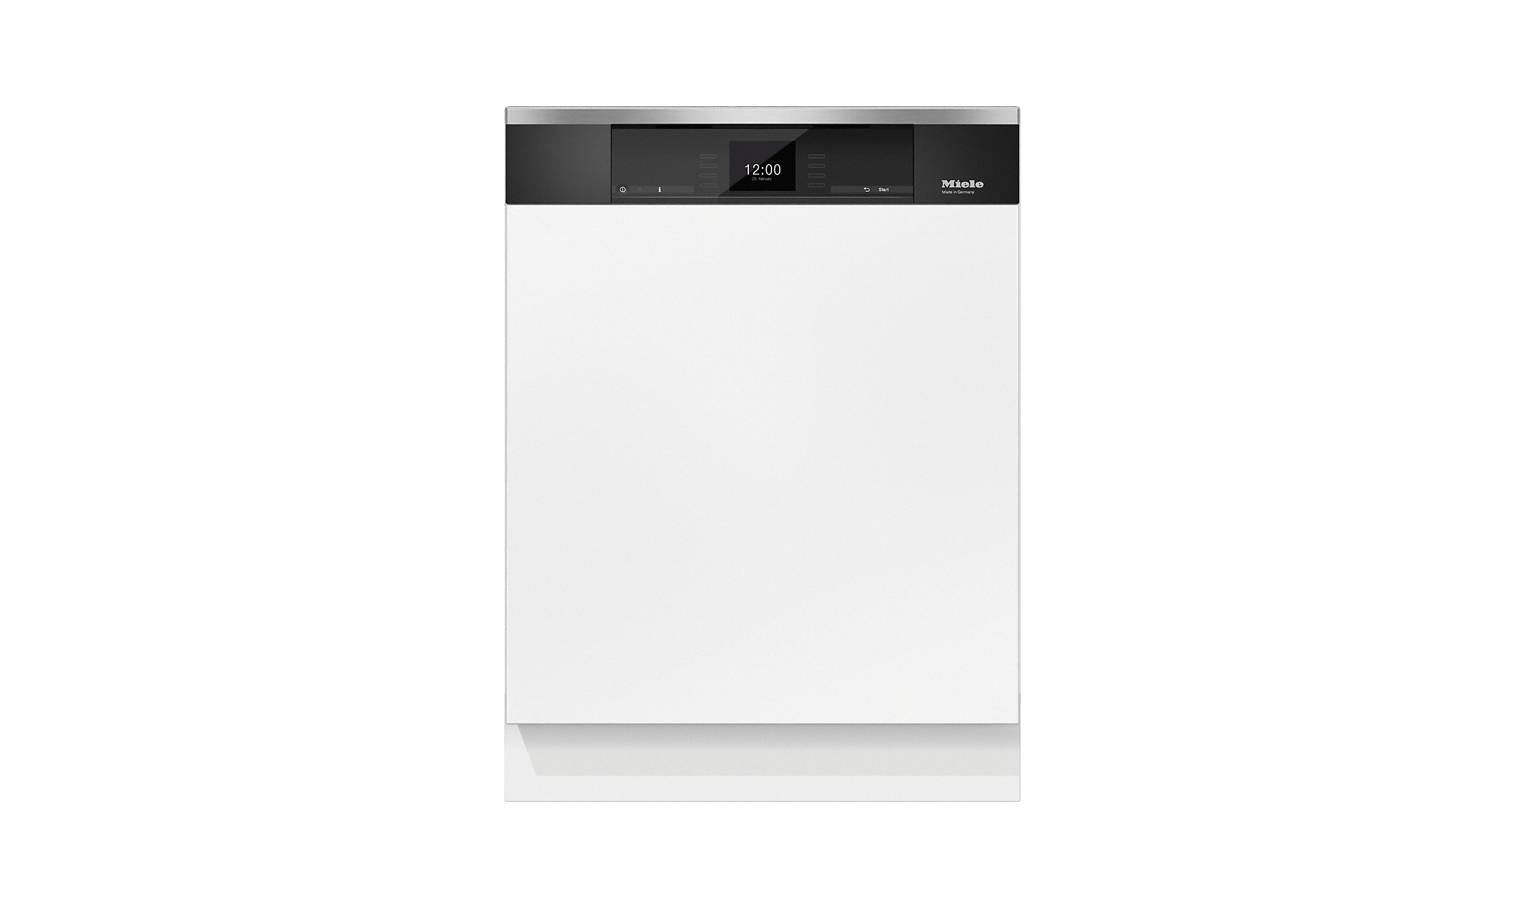 Miele G 6921 SCi Semi-integrated Dishwasher - Clean Steel - 01